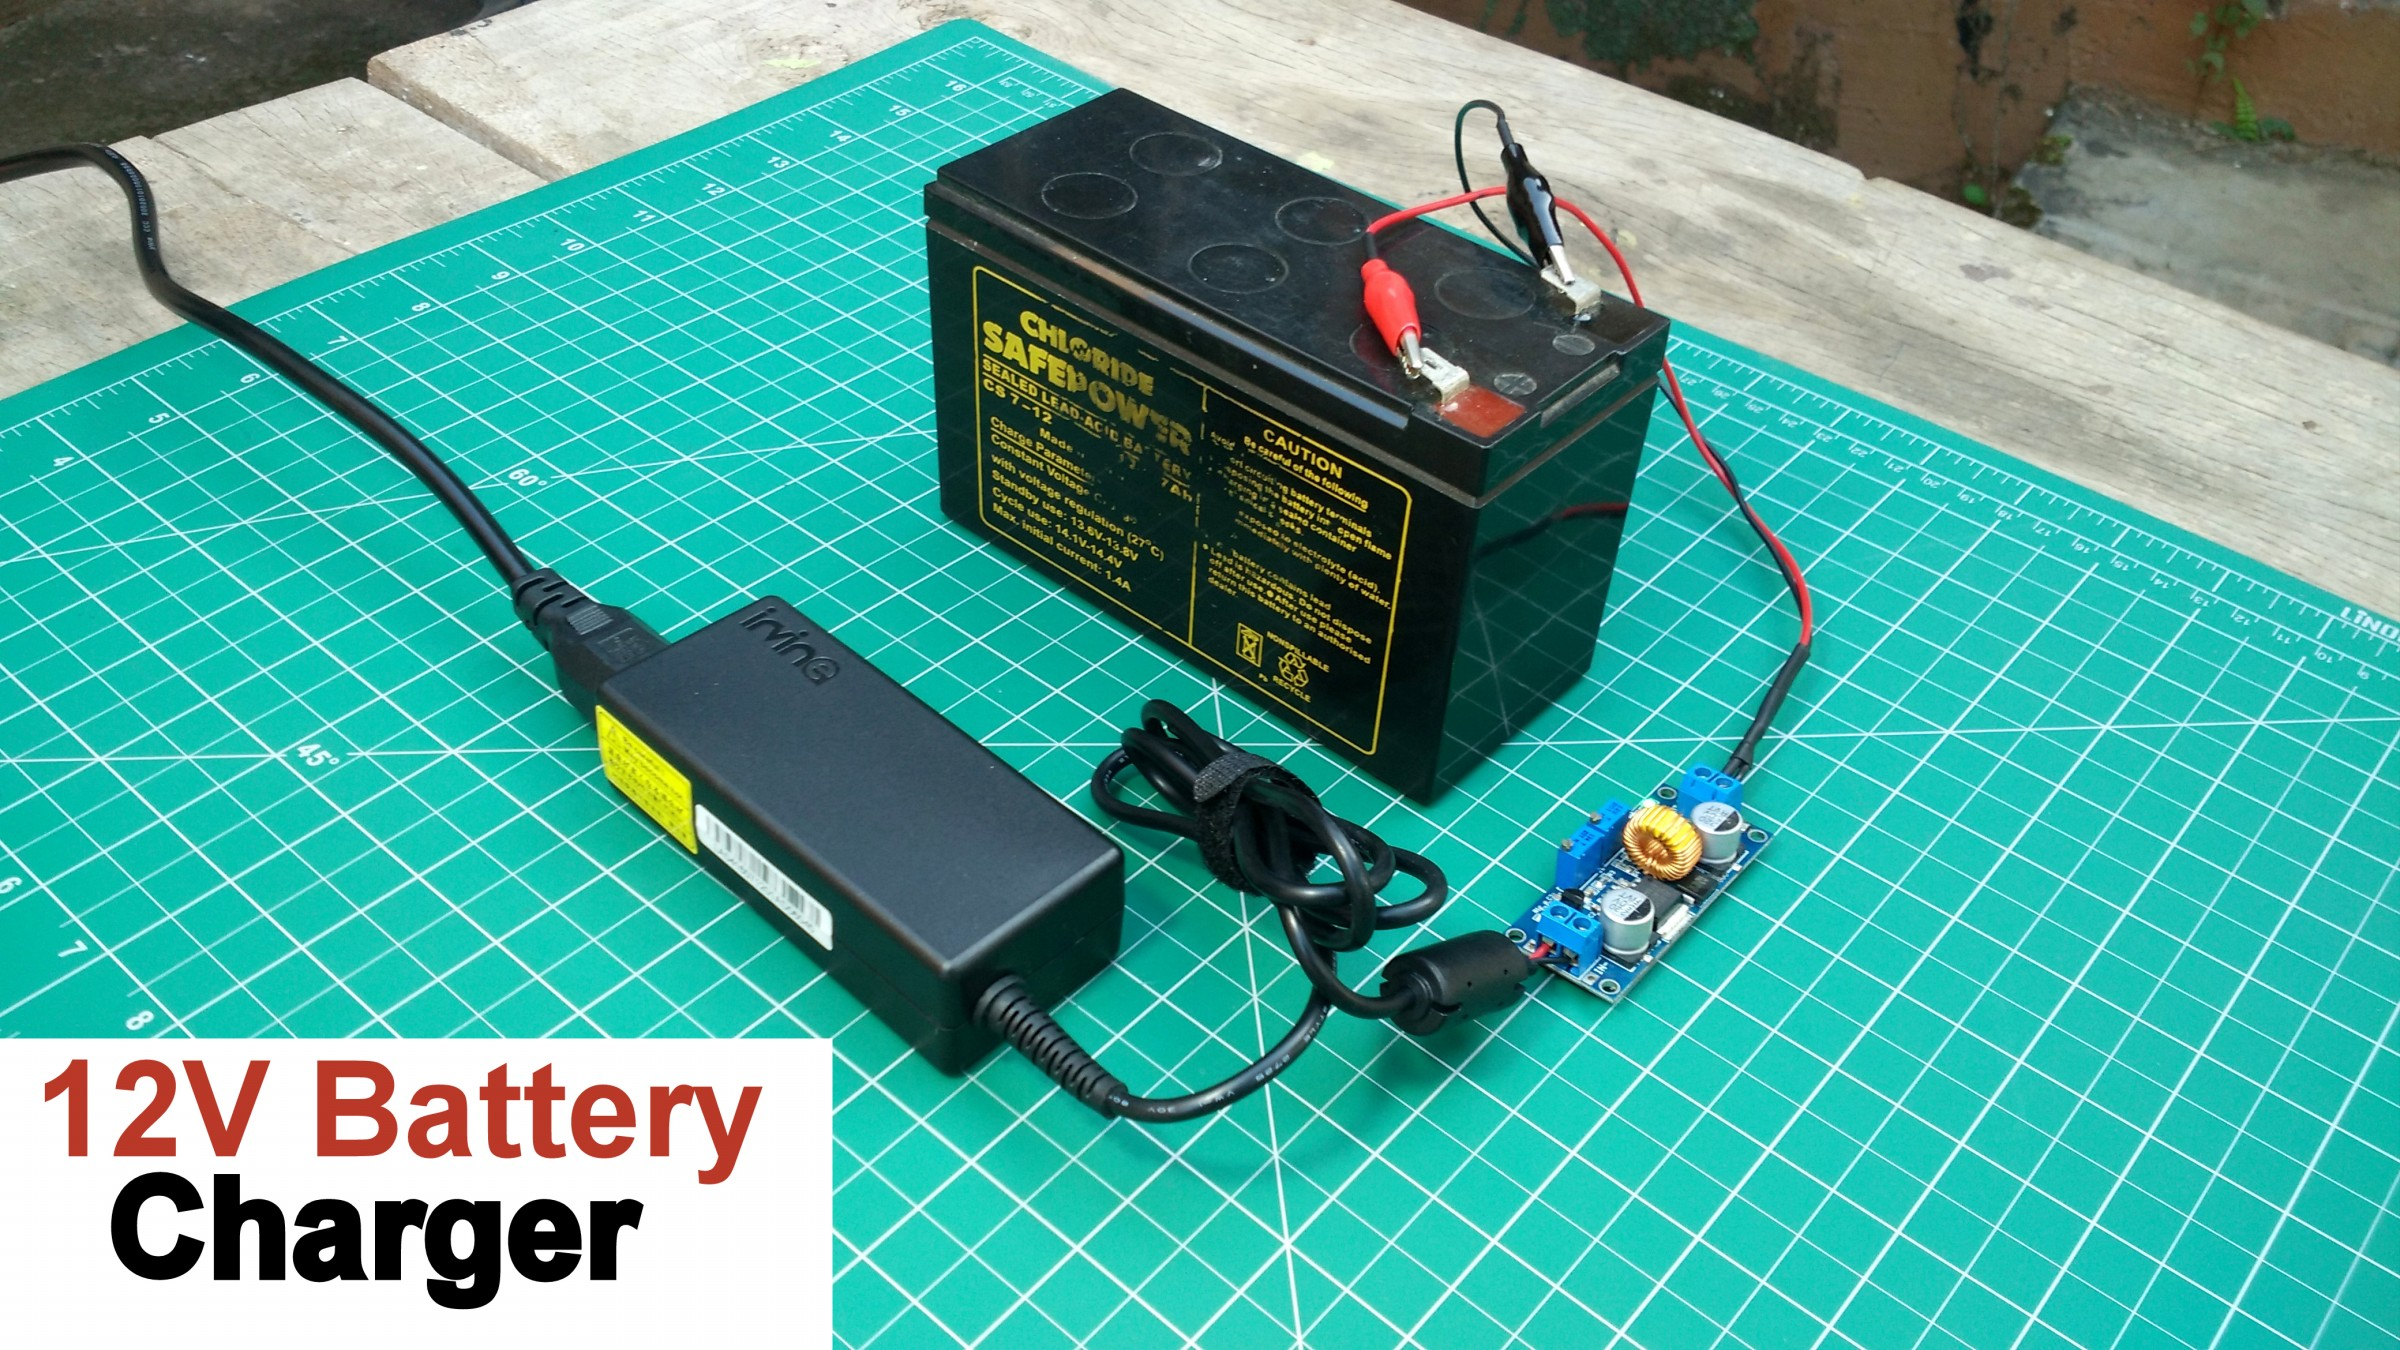 How to Make a 12v Battery Charger : 5 Steps (with Pictures